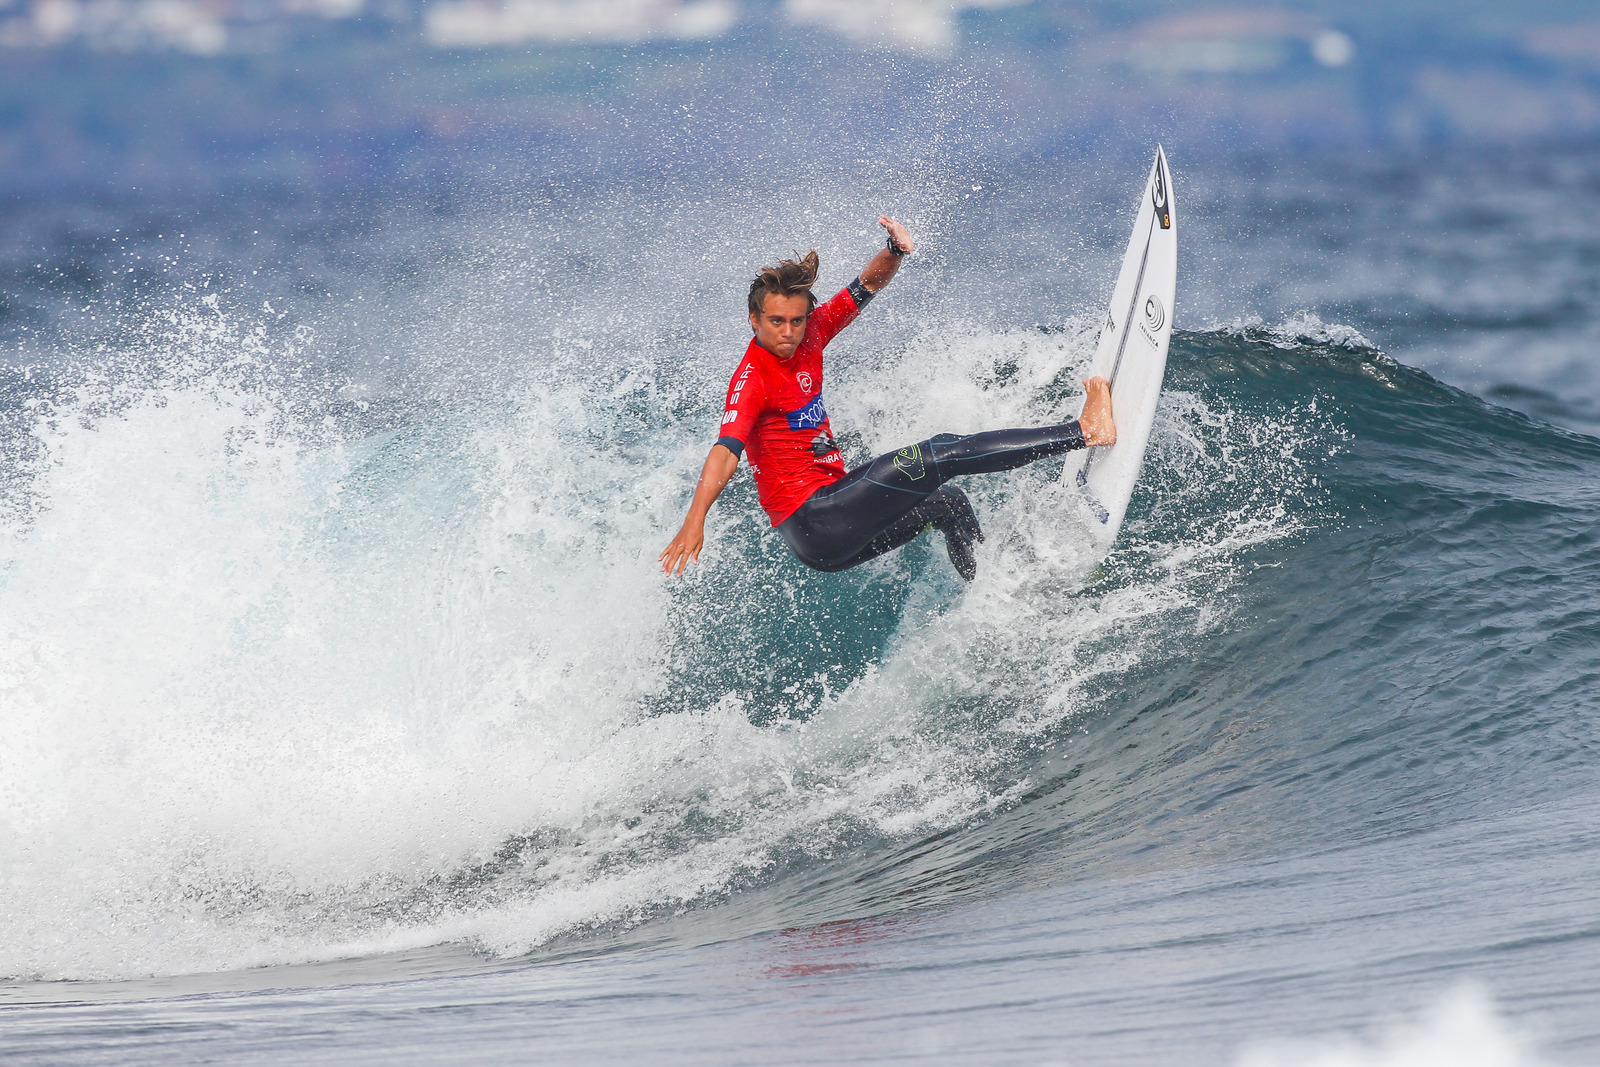 Kauli Vaast, double champion d'Europe junior, retrouvera face à lui une grosse concurrence. (Photo:  WSL / Masurel)